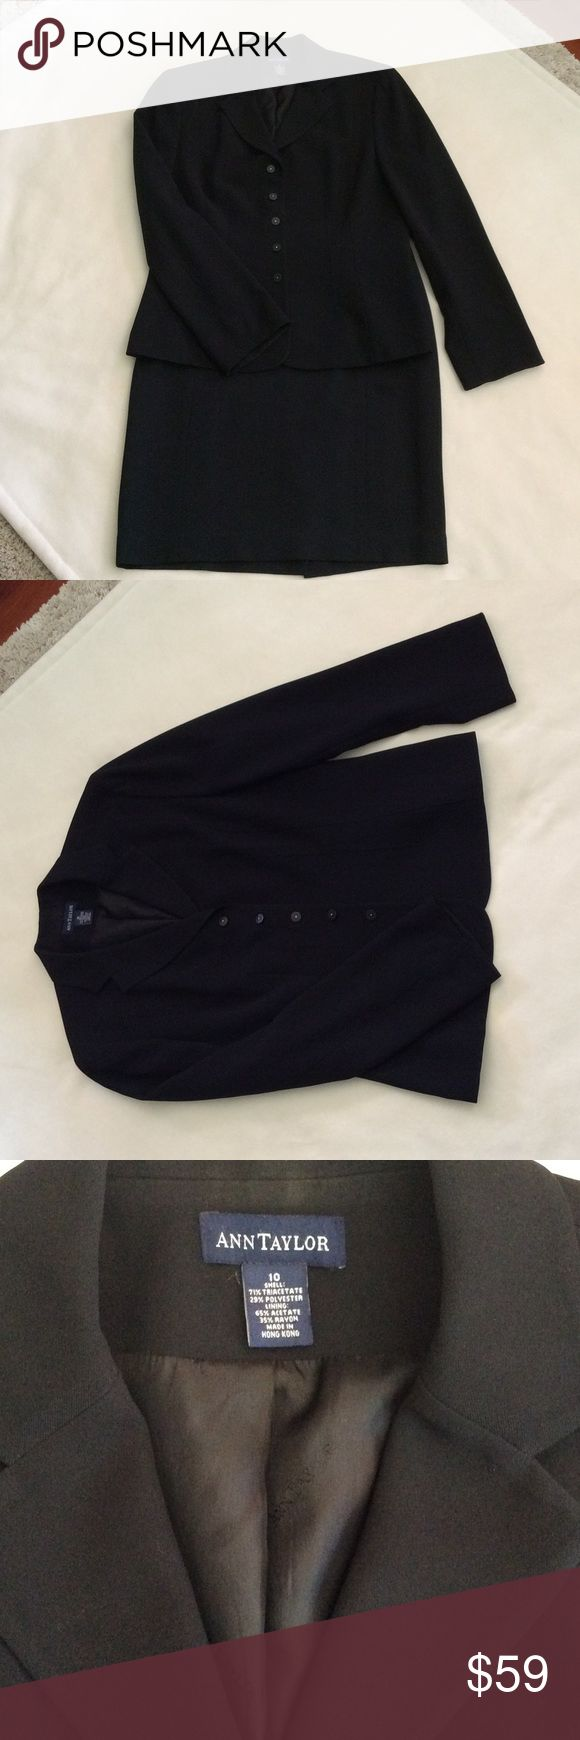 SUNDAY ONLY  Ann Taylor skirt suit Very sharp Ann Taylor skirt suit..black size 10. Great condition!! Ann Taylor Skirts Skirt Sets